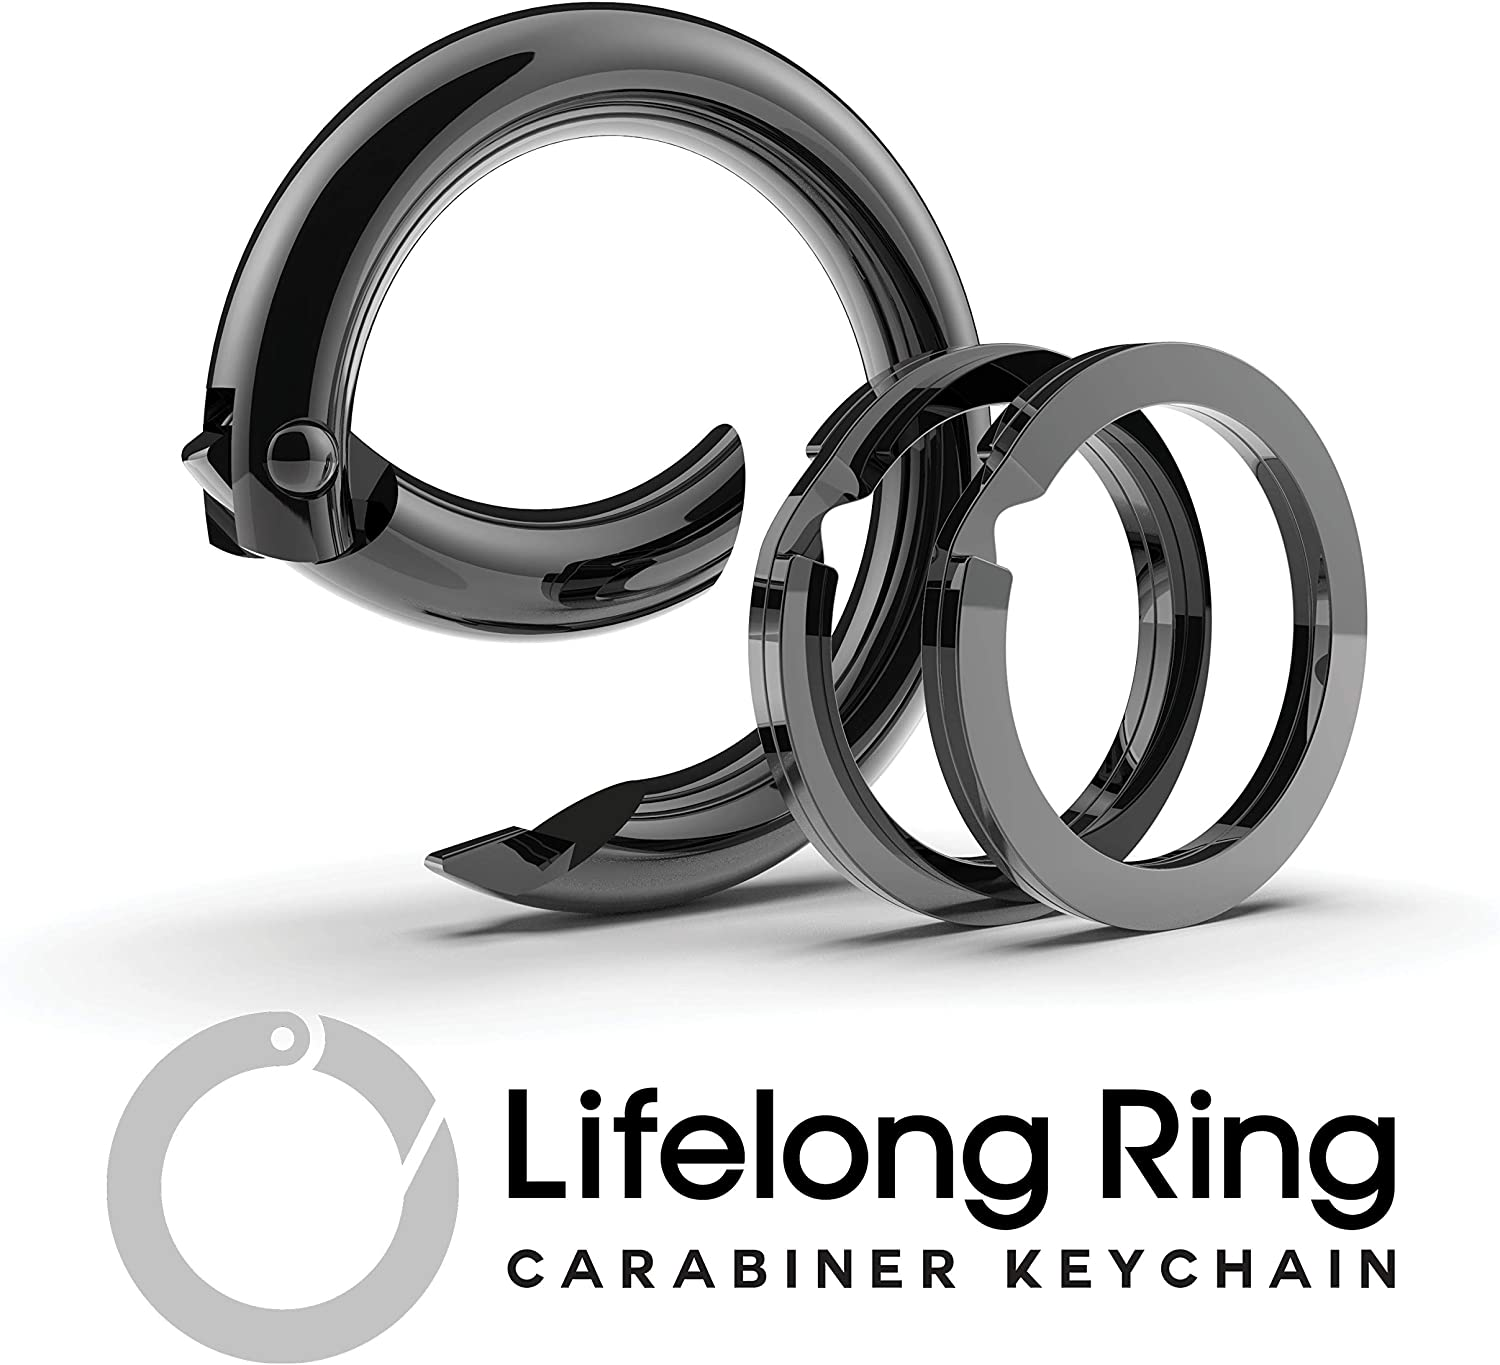 Lifelong Ring Fashion Carabiner Keychain w/ 2 Matching Key Rings Set, 100 Series Universal Size, Pure Round Circle Design, Strong, Solid Metal Keychain Clip, Key Clip, Key Organizer (Black)